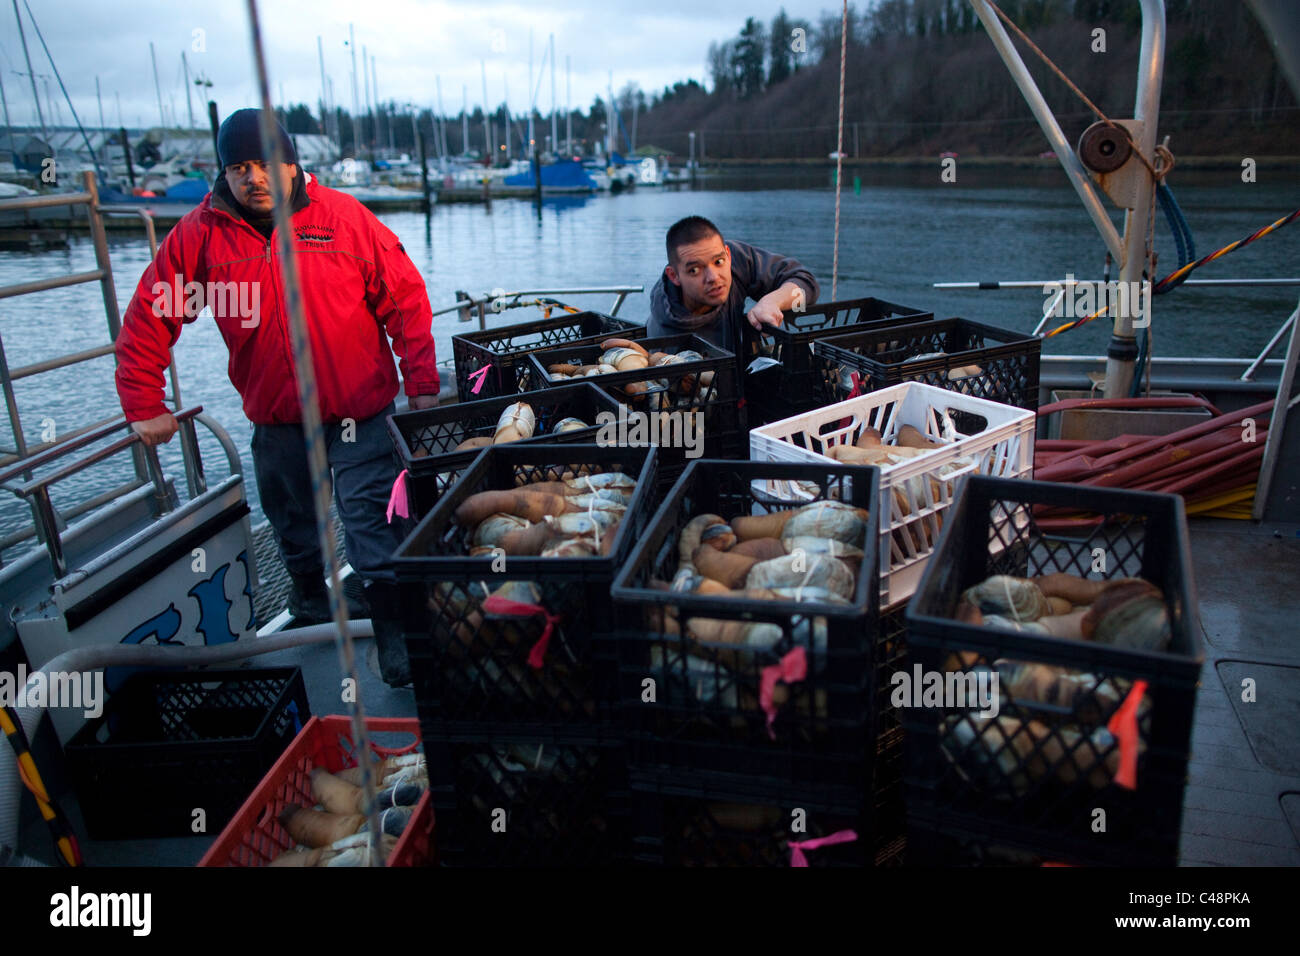 Tribal diversi help off-load harvested geoducks from the vessel in Brownsville, Washington - Stock Image